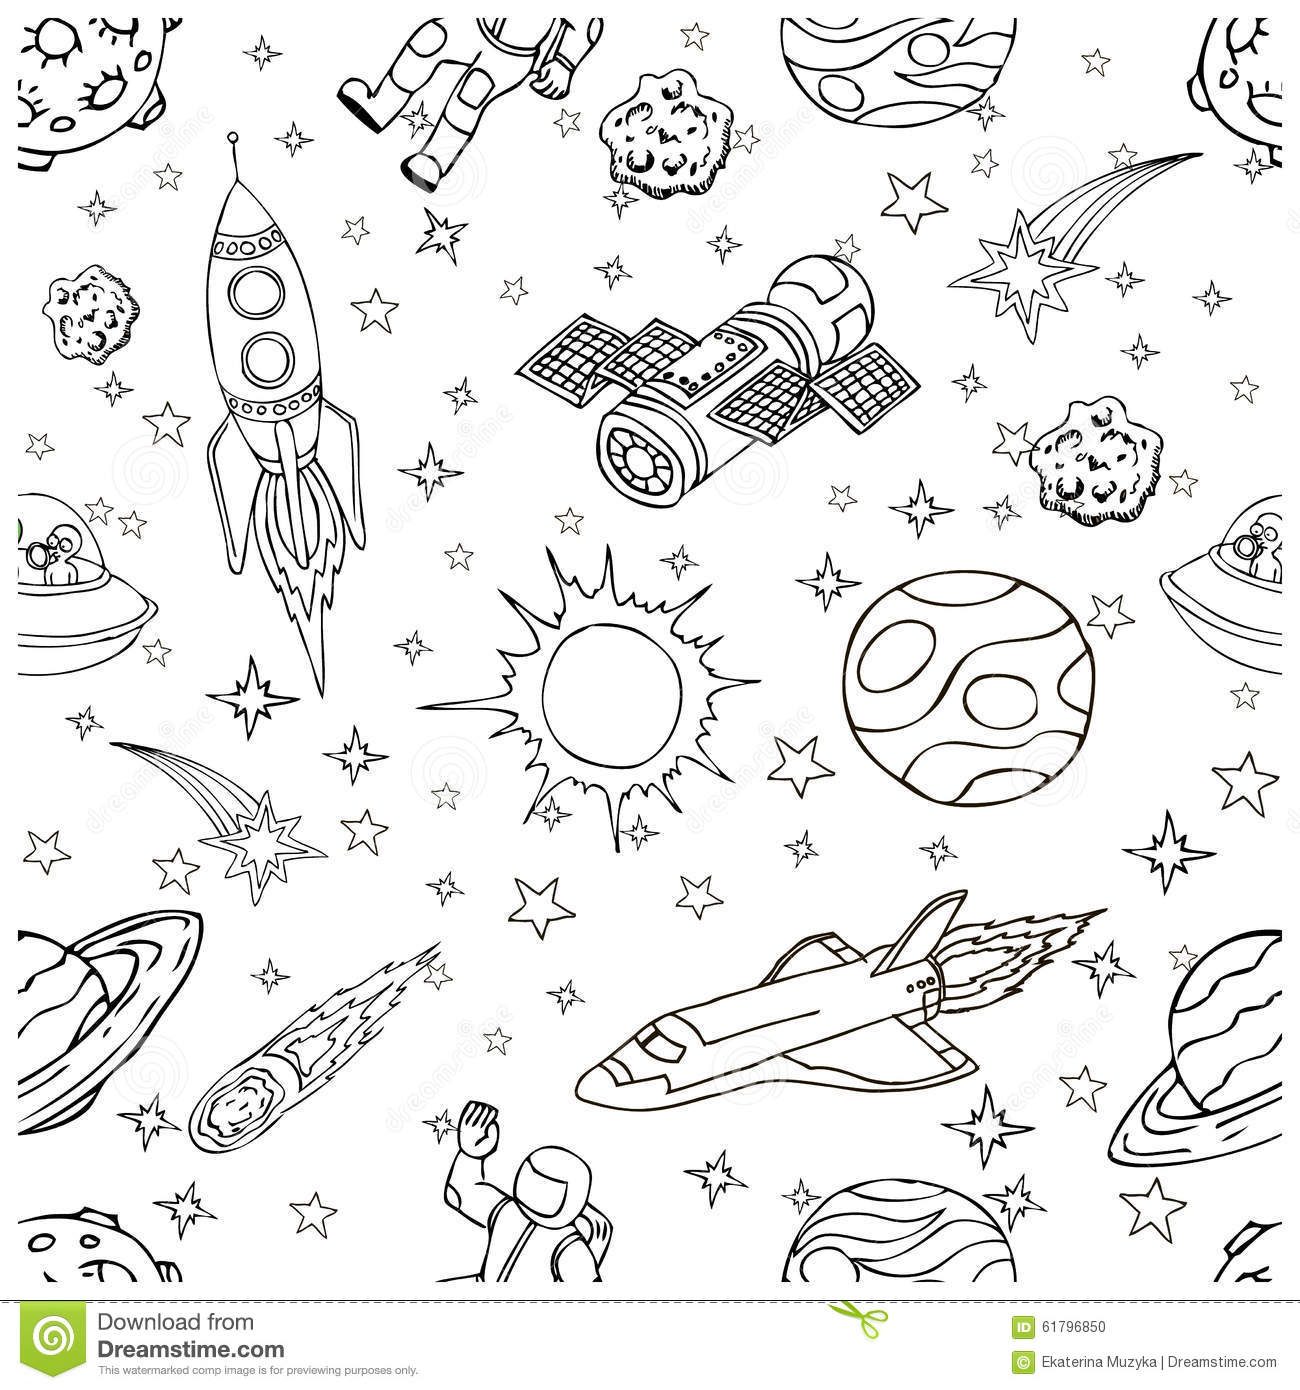 Bullet together with Stock Photos Black White Face Vector Image10113153 together with Apollo 11 Saturn V together with Stock Illustration Outer Space Doodles Symbols Design Elements Spaceships Pla s Stars Rocket Astronauts Satellite  ets Cartoon Icons Image61796850 in addition Royalty Free Stock Images Artist Brush Palette Sketch Image22337659. on rocket illustration